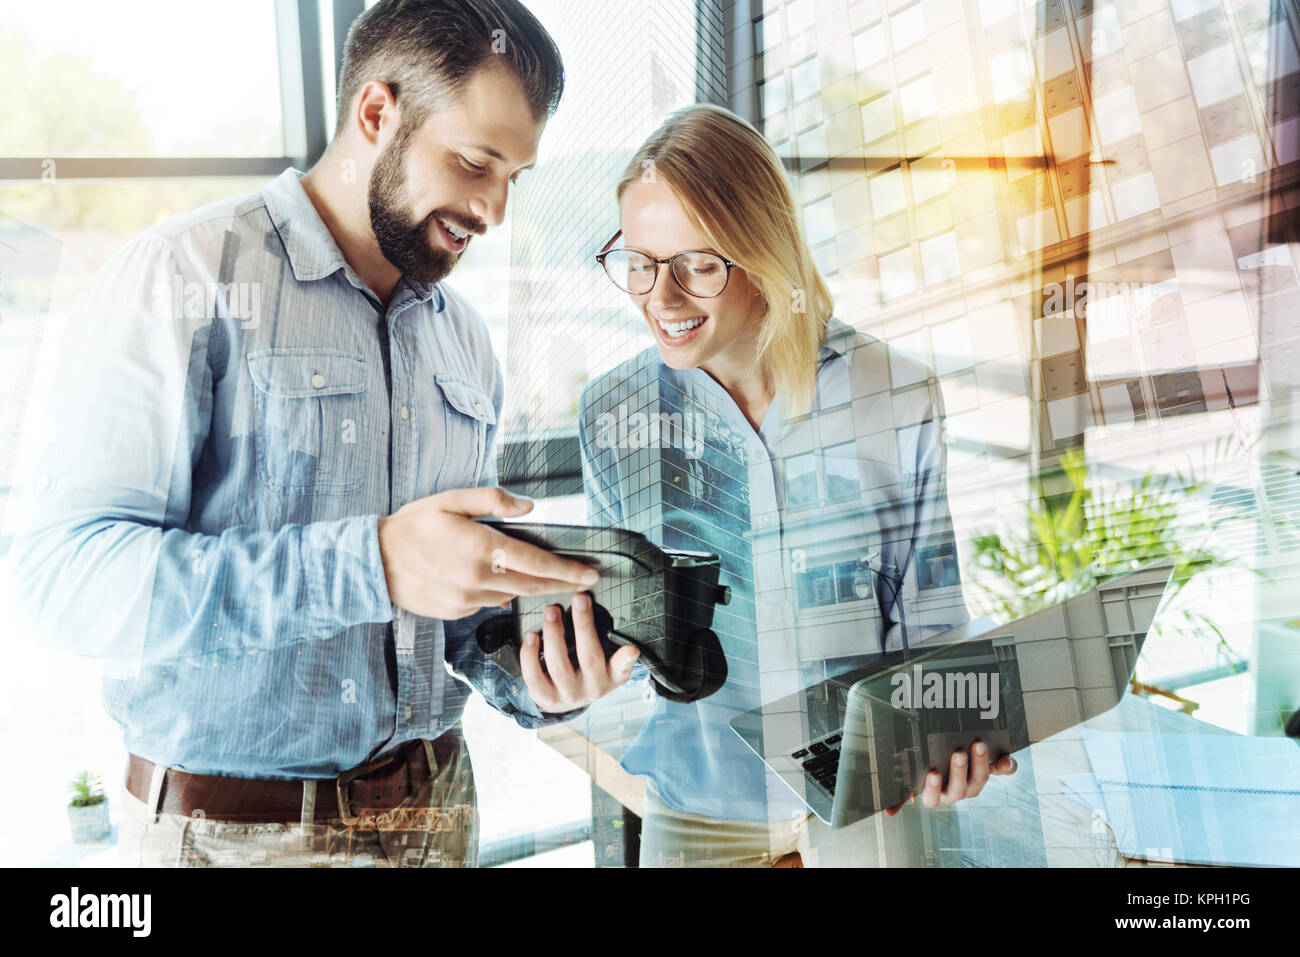 Joyful surprised employees keeping gadgets and observe it. - Stock Image